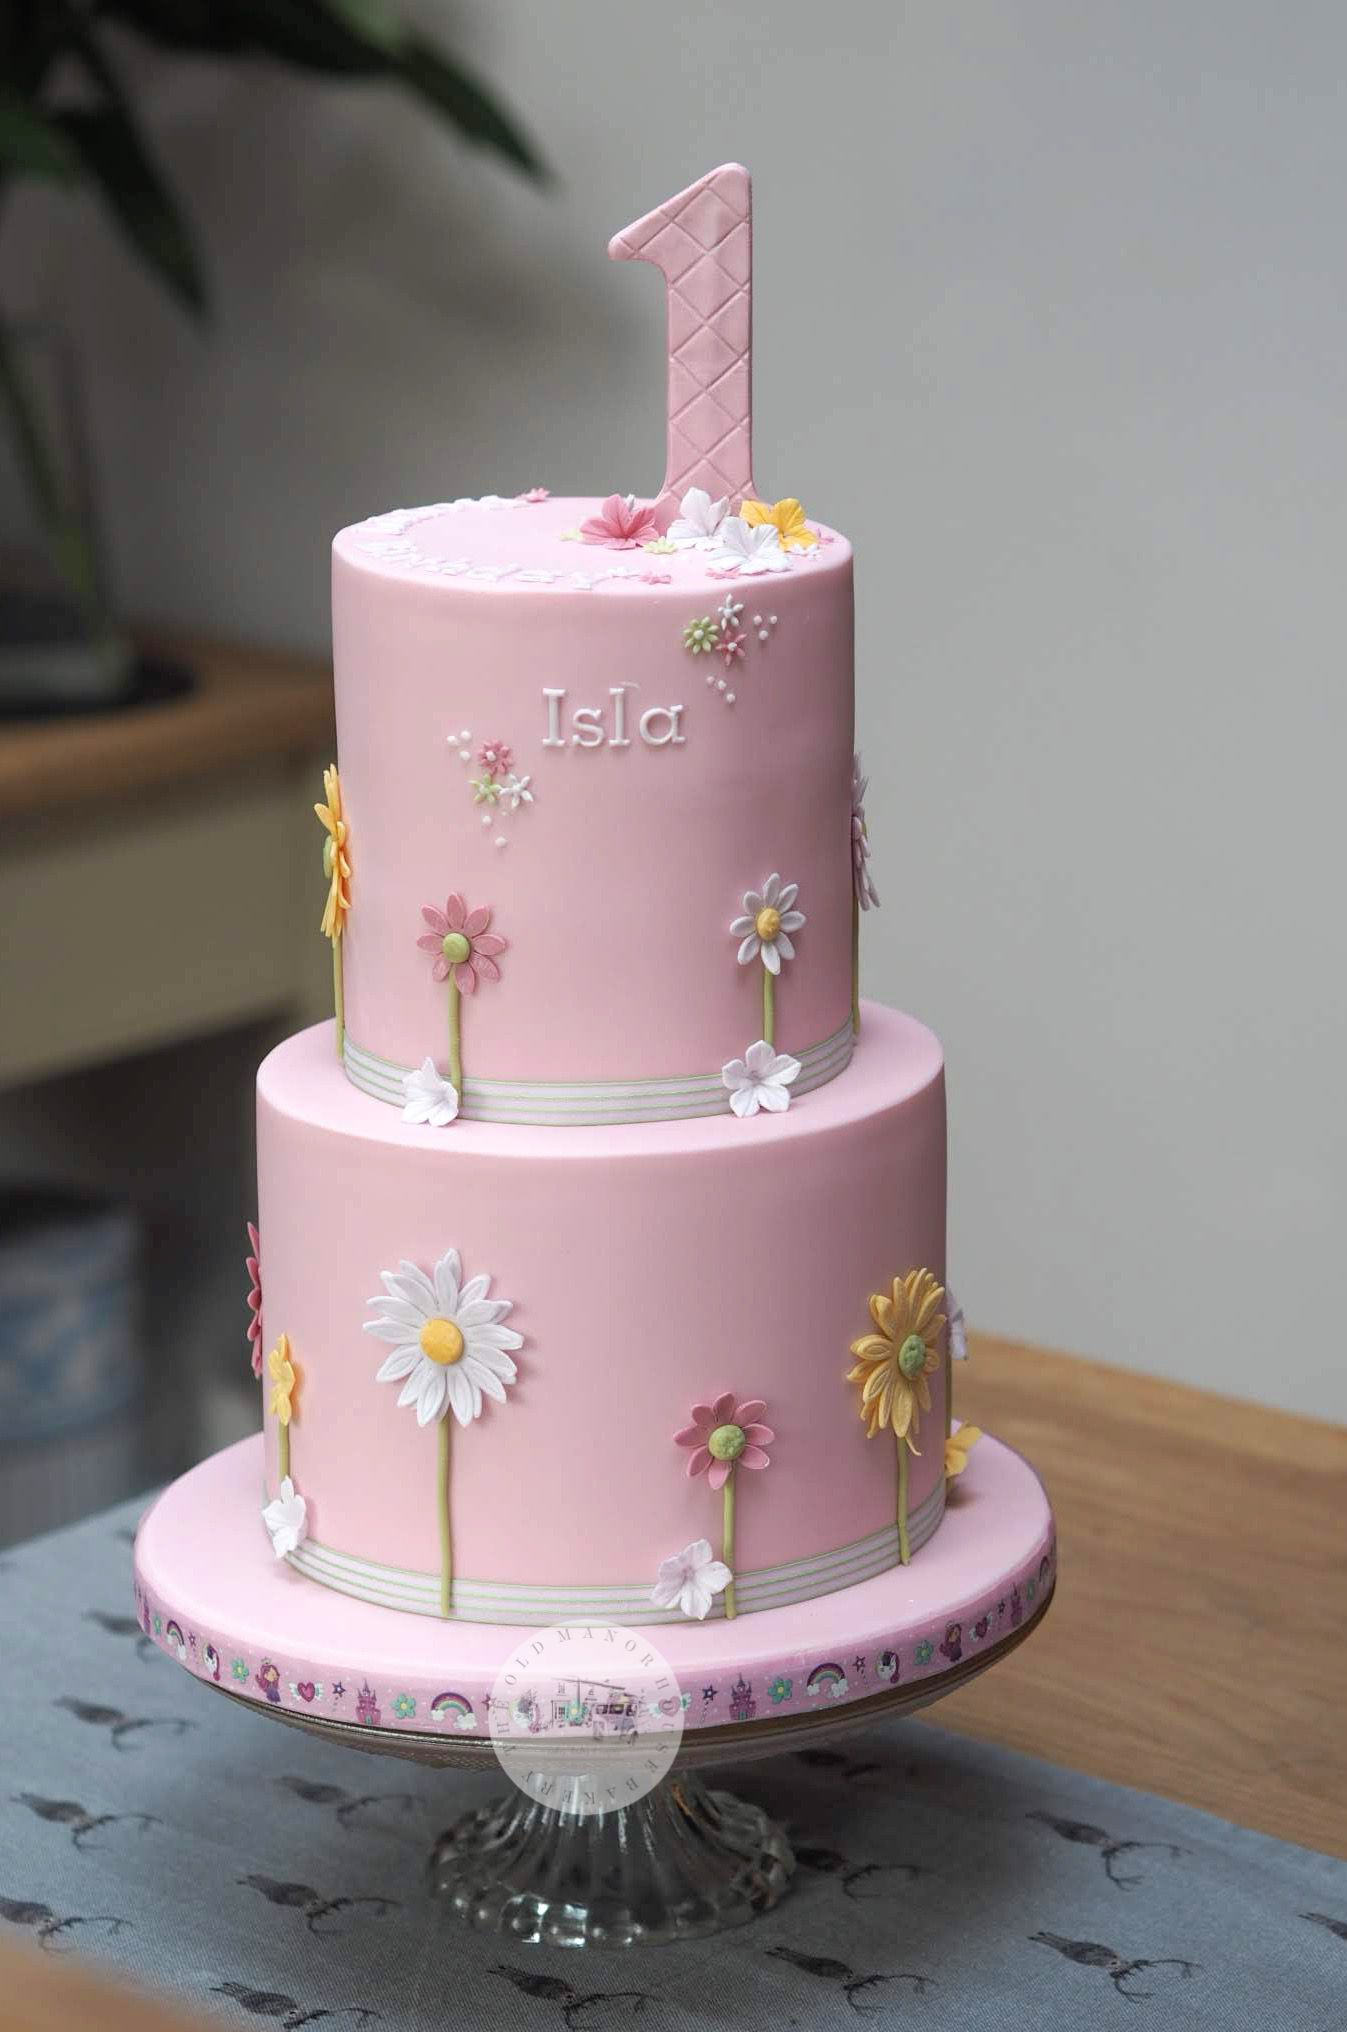 Pretty girls first birthday cake with pretty flowers, 2